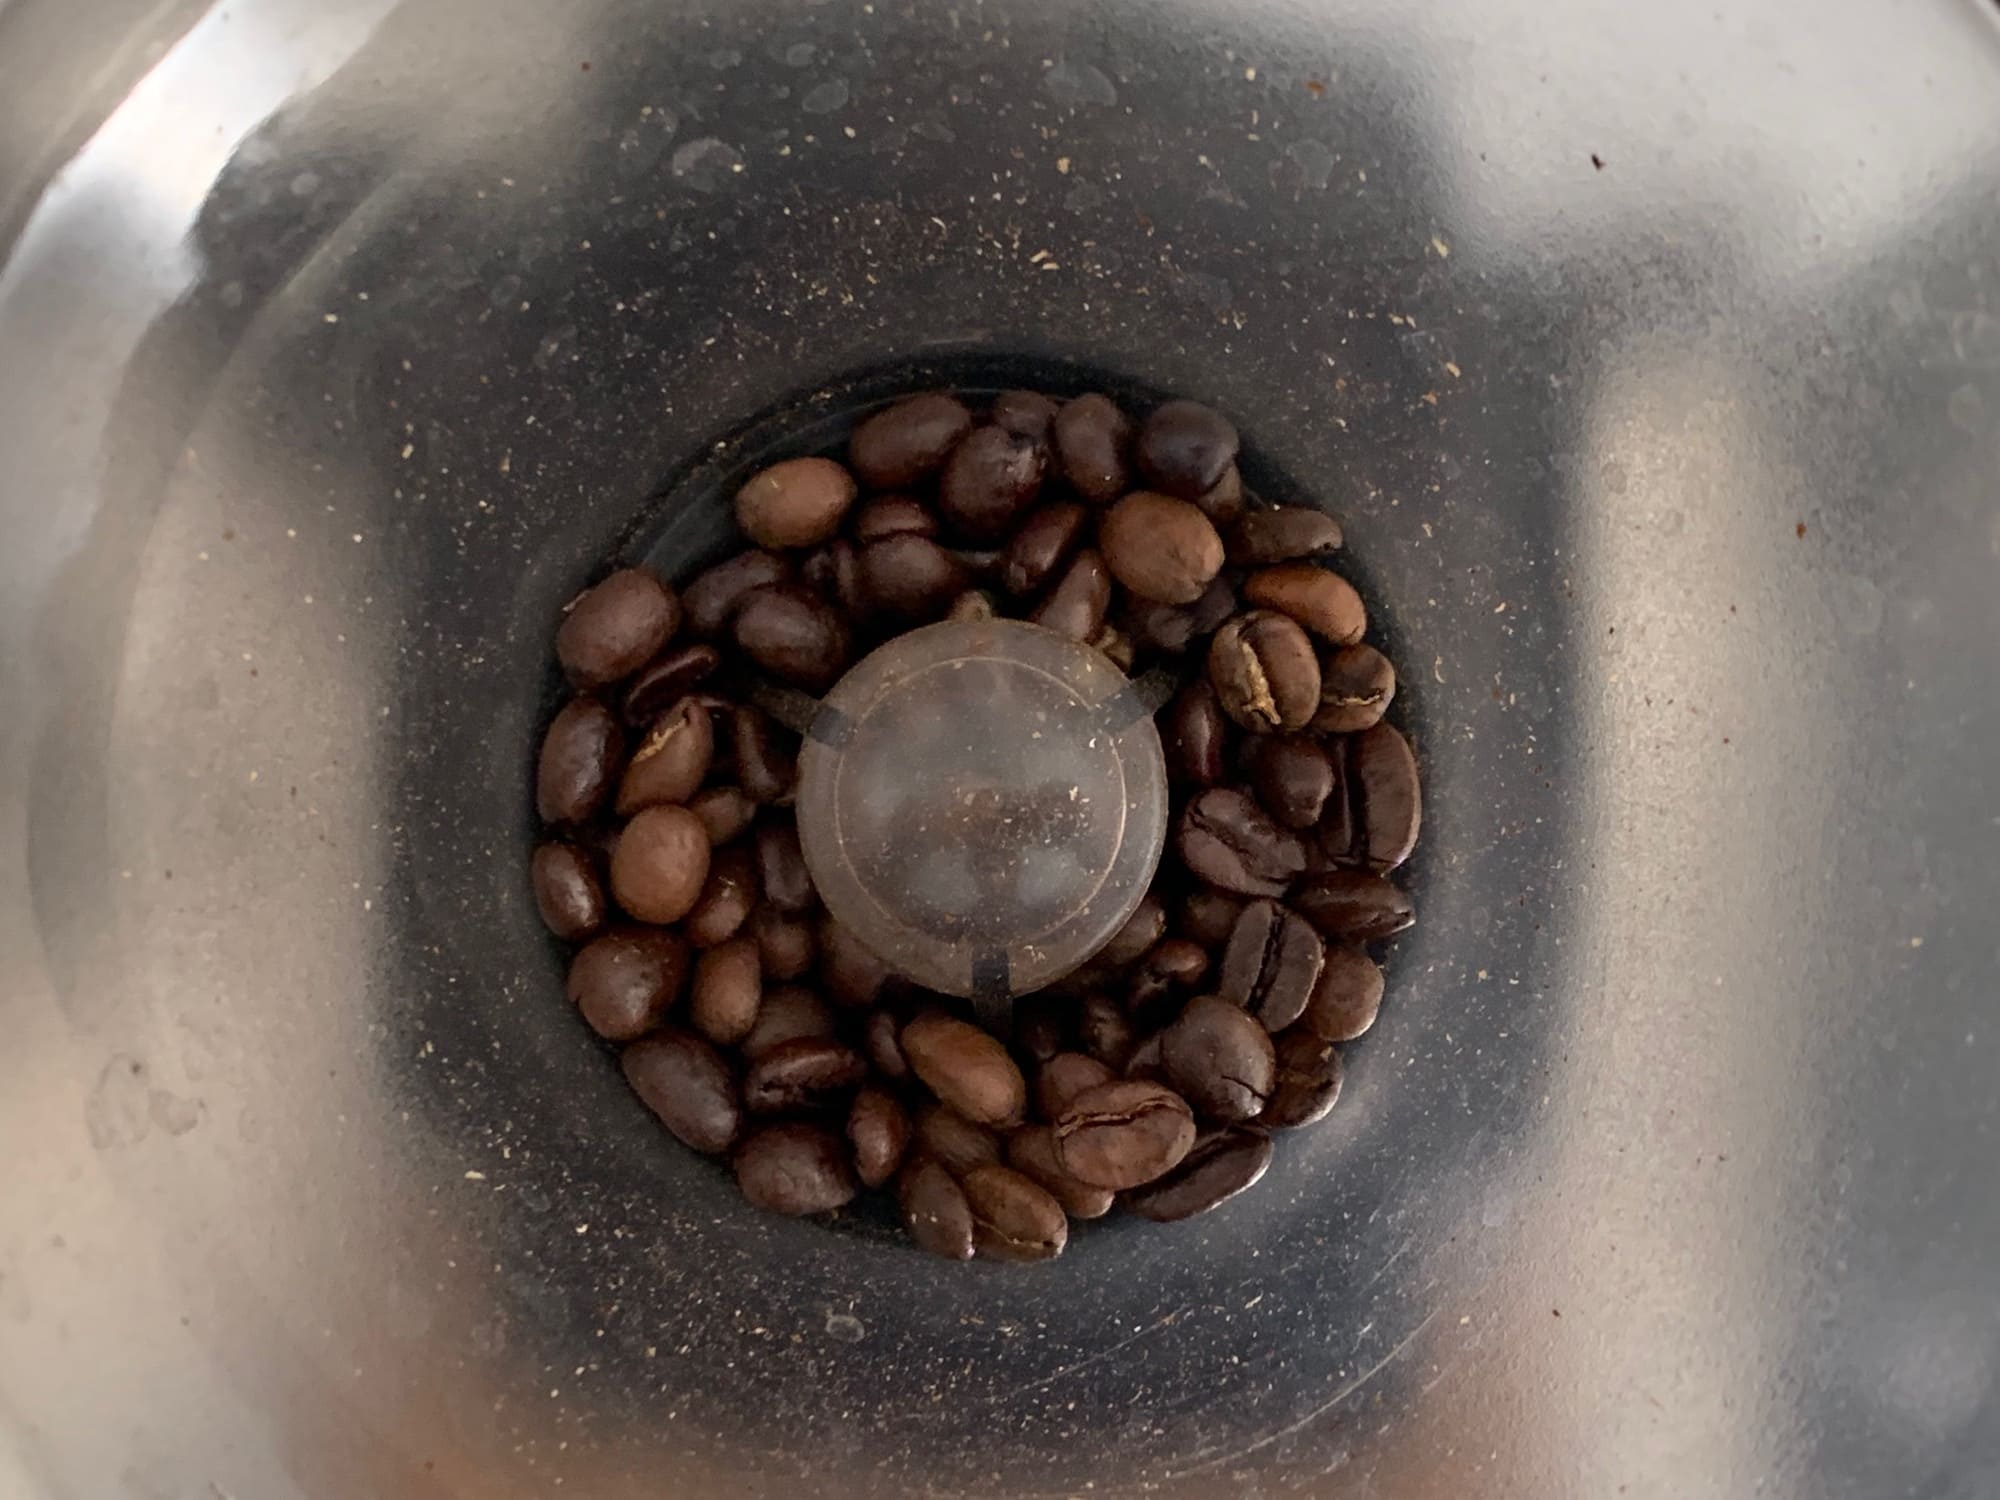 A proper coffee grinder is essential for any brewing method.